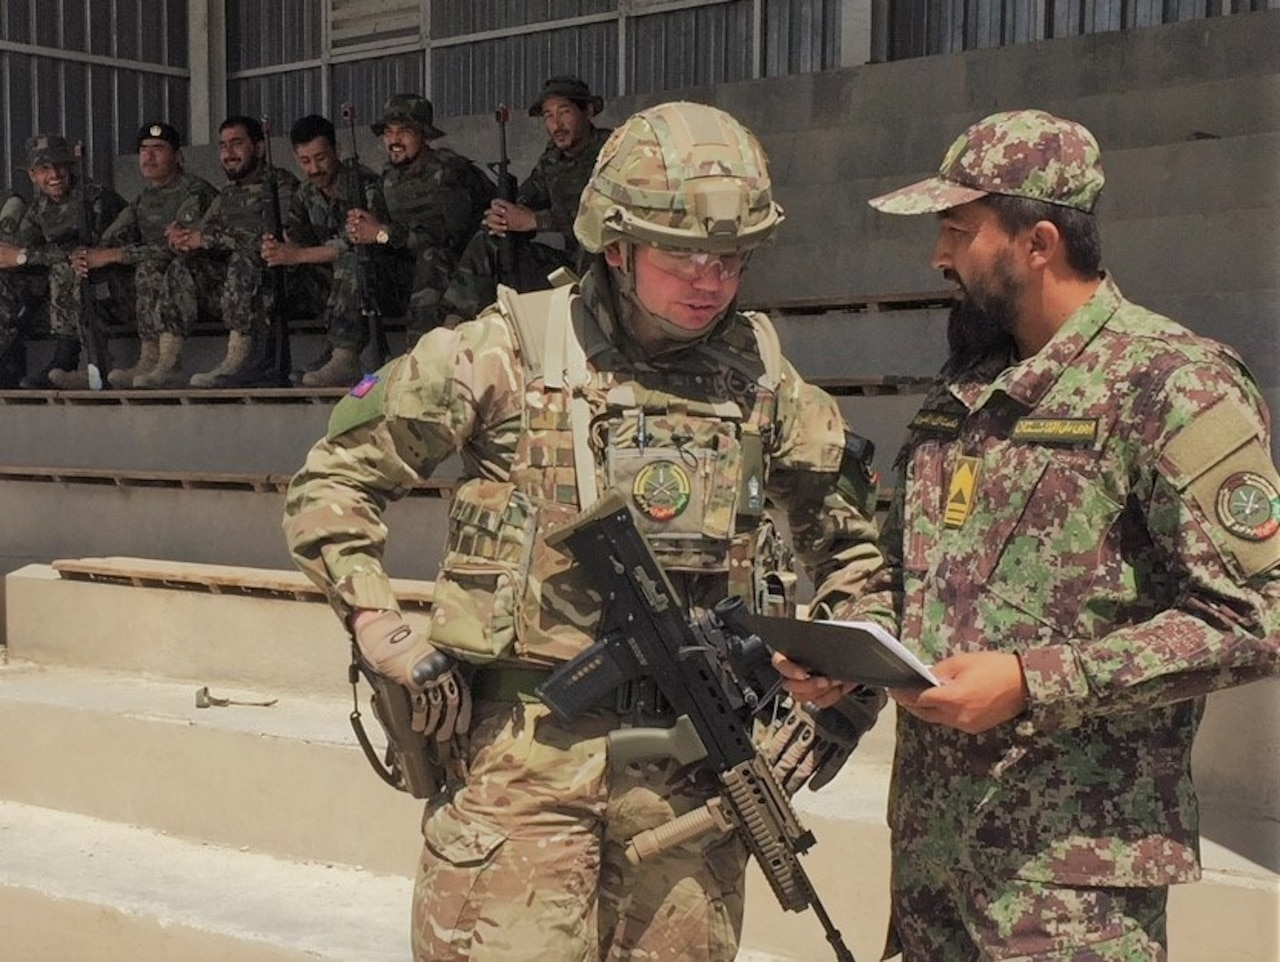 Afghan soldier speaks with British advisor.